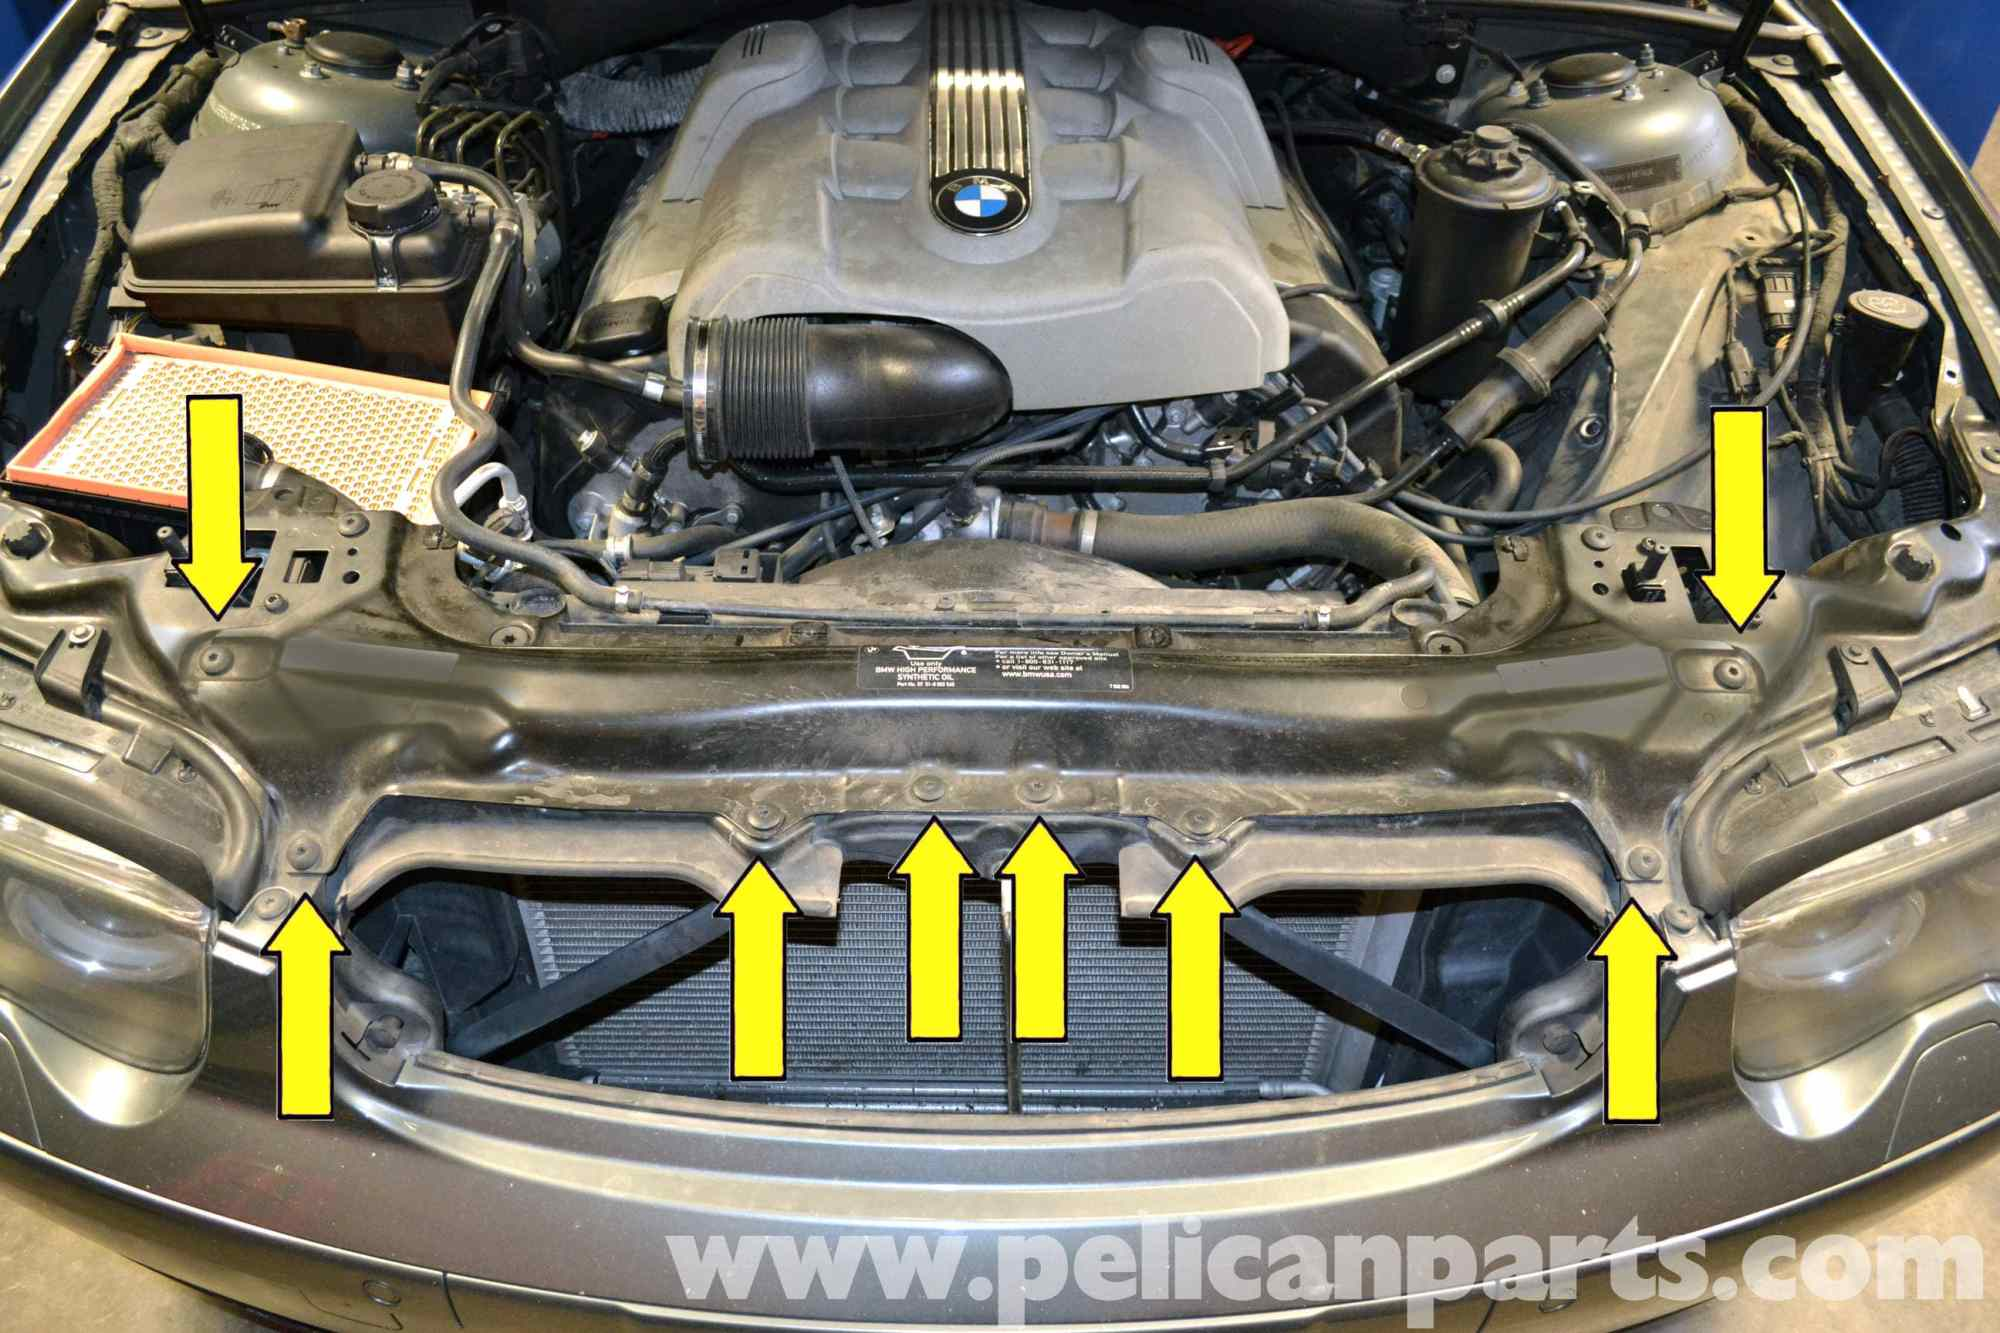 hight resolution of bmw 650i engine diagram wiring diagram origin bmw m73 engine diagram 2006 bmw engine diagram